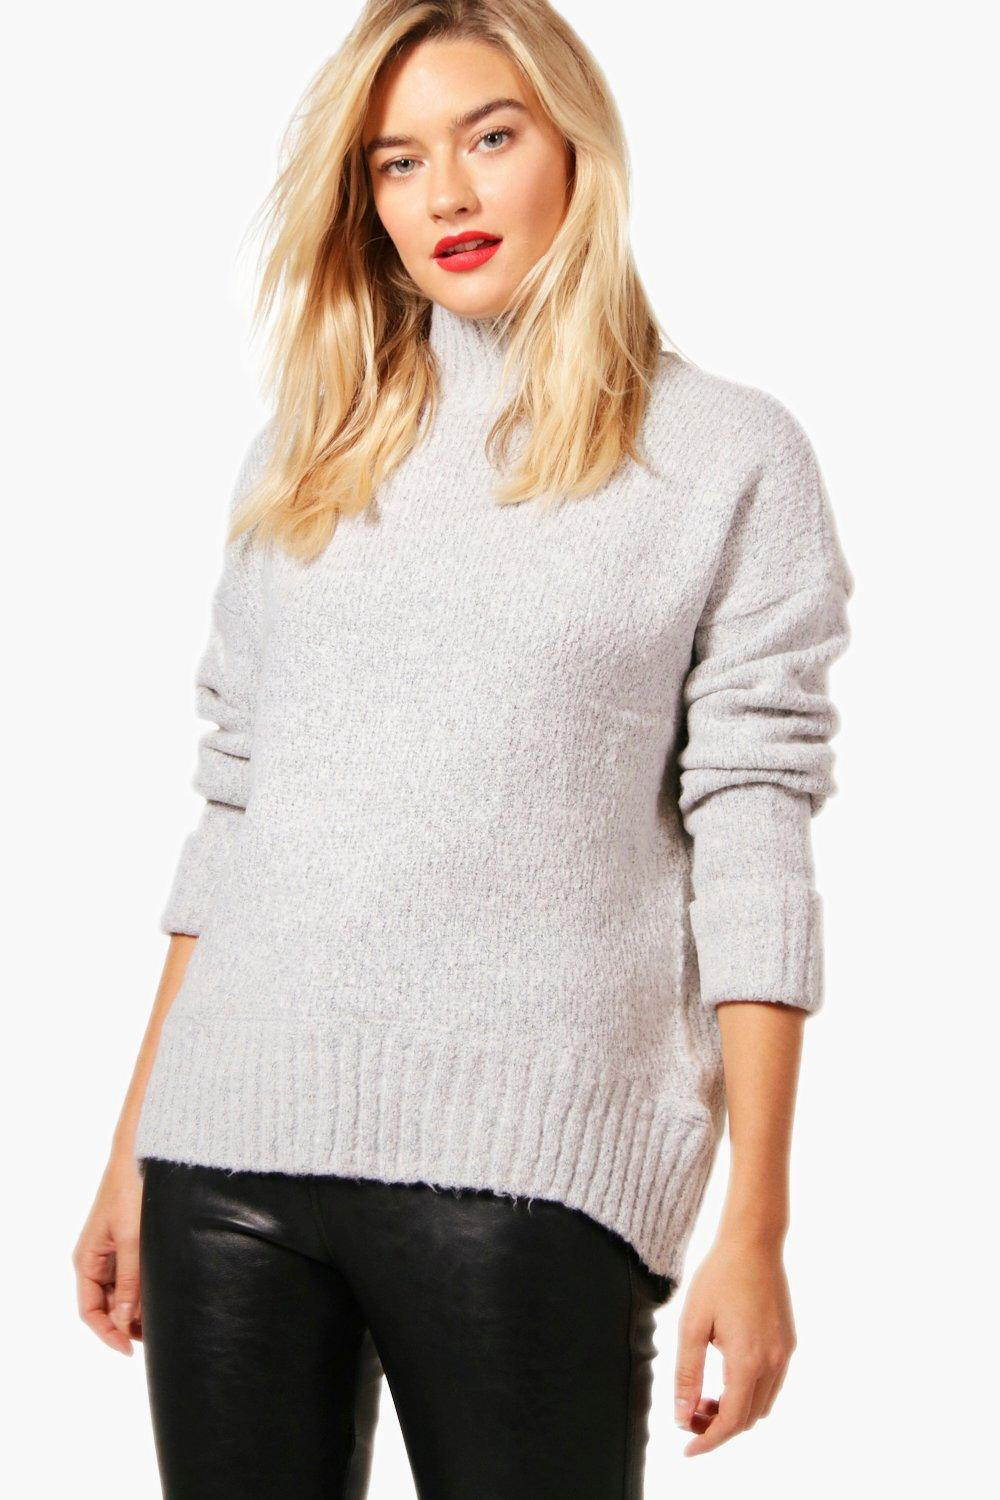 This is one of the best Christmas turtlenecks for your next holiday party!